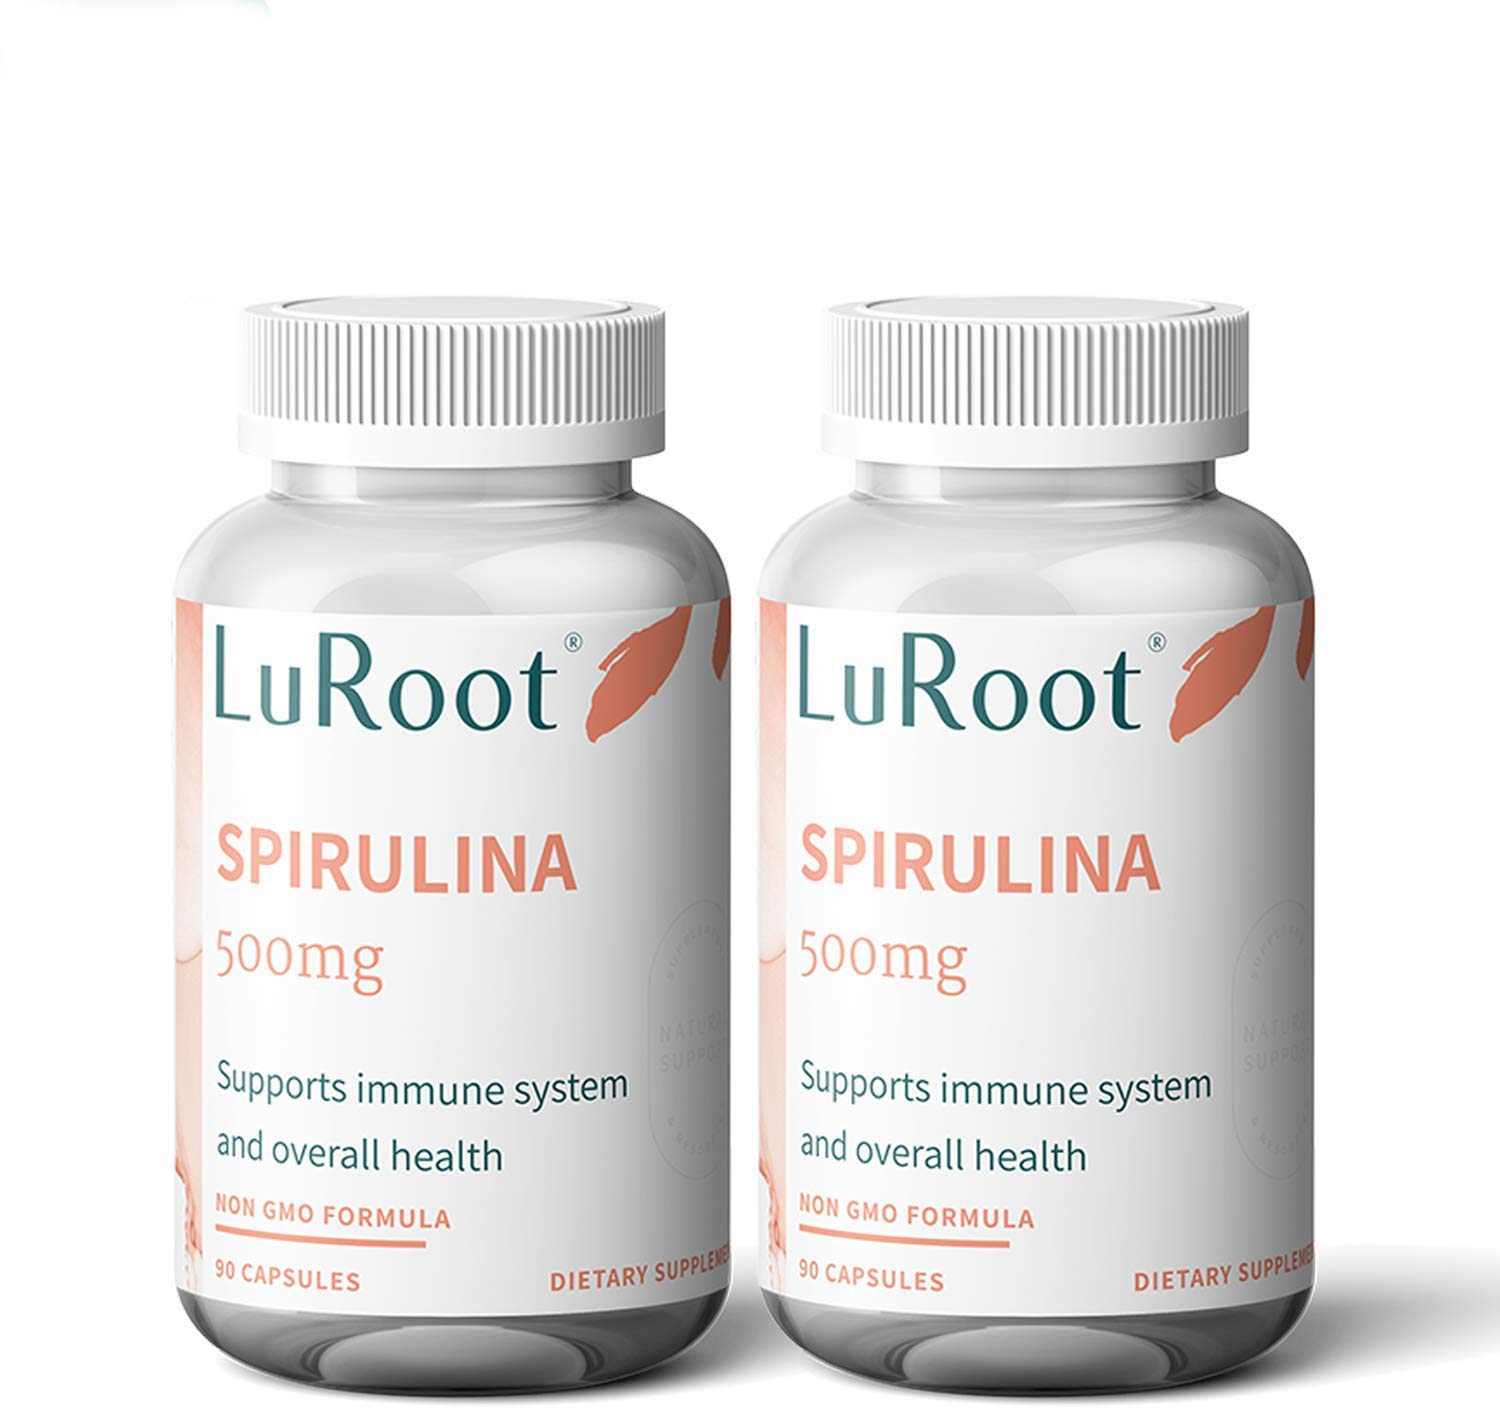 LuRoot Organic Spirulina Superfood Non-GMO-500 mg Powder Capsules, Spirulina Powder Supplement | High Protein Rich in Vitamins and Calcium - 90 Count (1 Pack) (2)